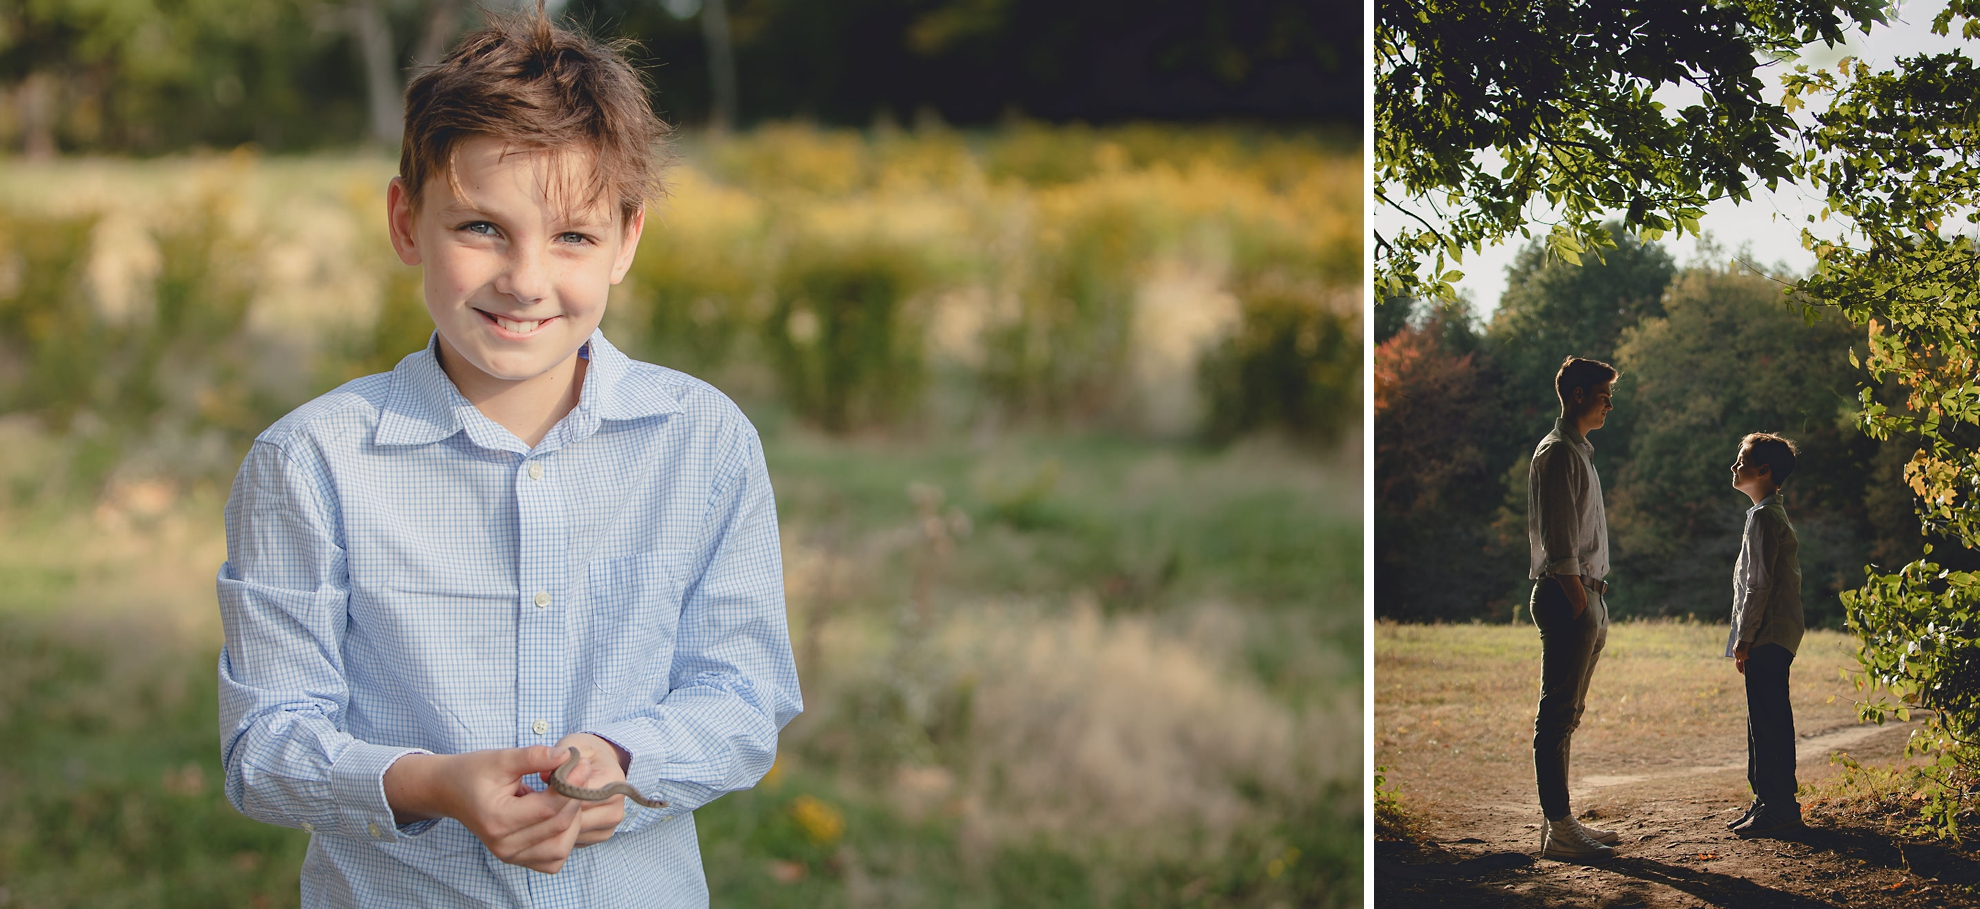 wny senior from east aurora highschool poses with little brother during senior portrait photography session at Knox Farm near Buffalo, NY